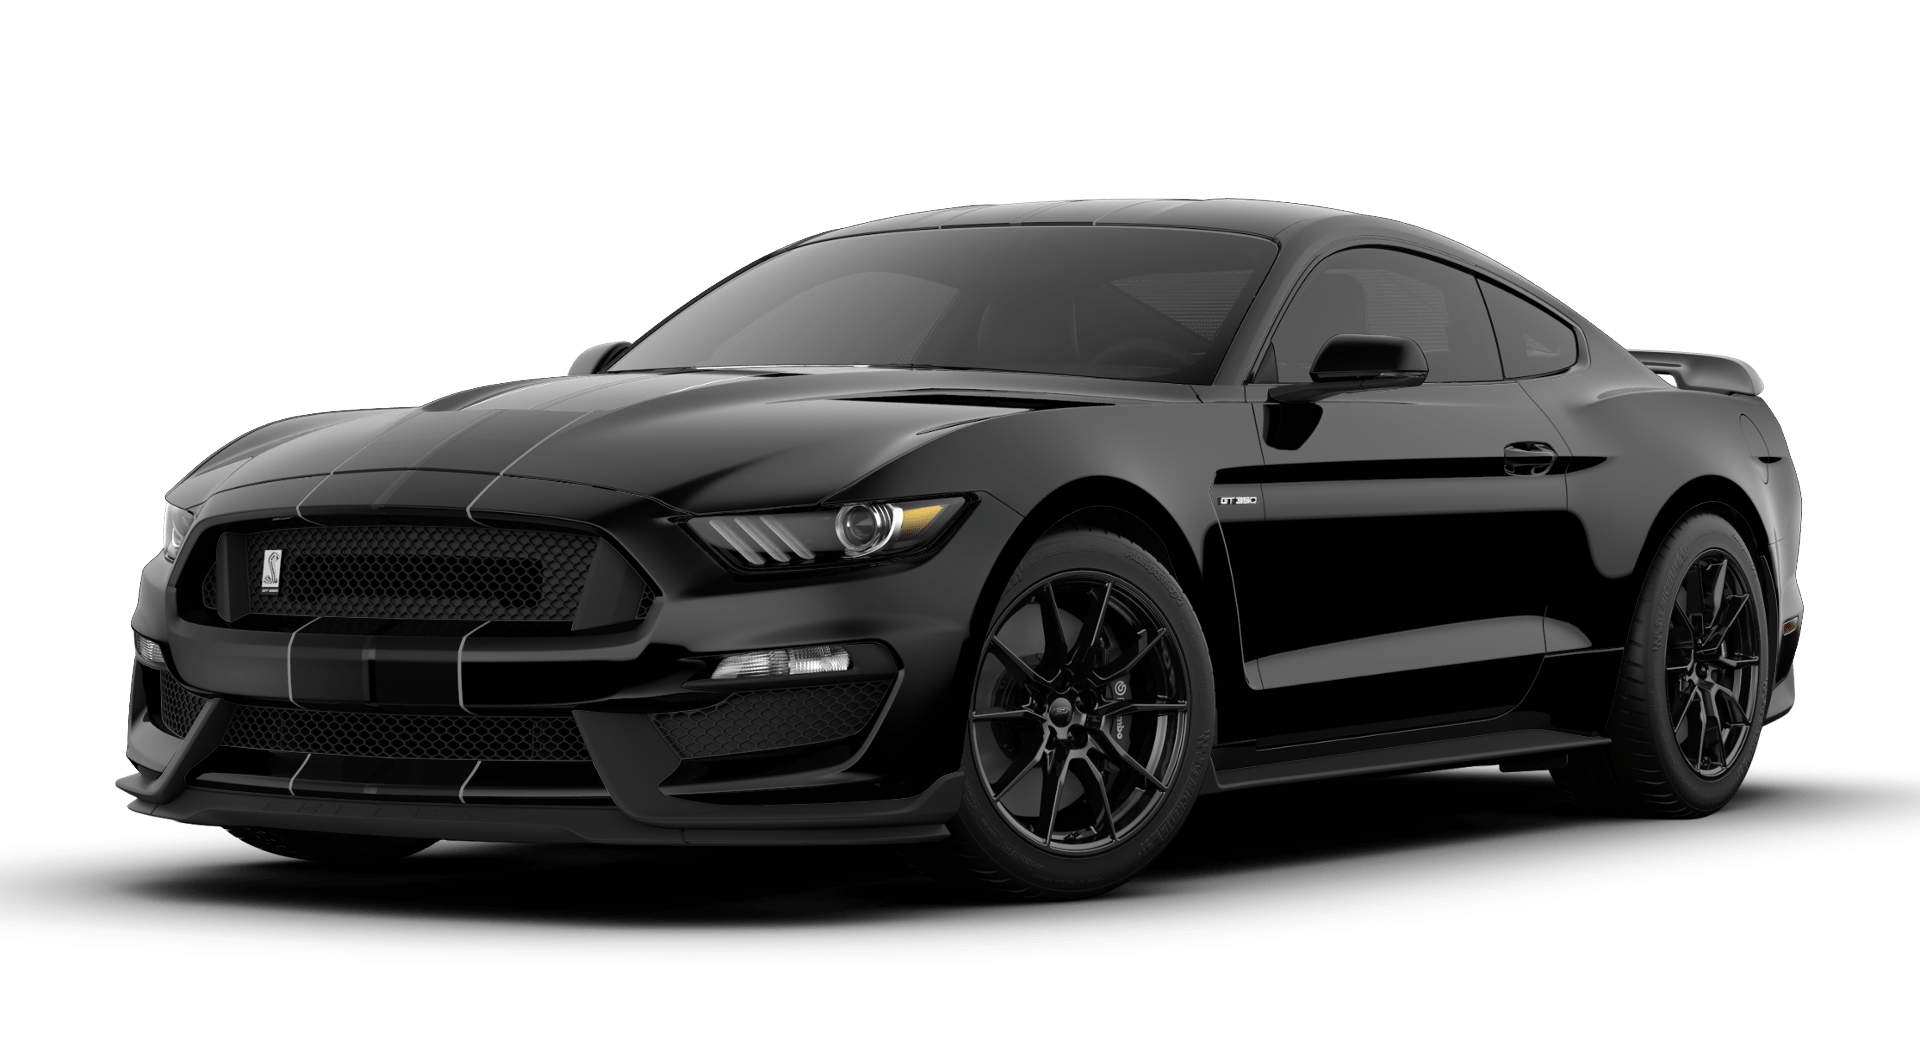 2019 Ford Mustang Build Price Ford Mustang Mustang Shelby